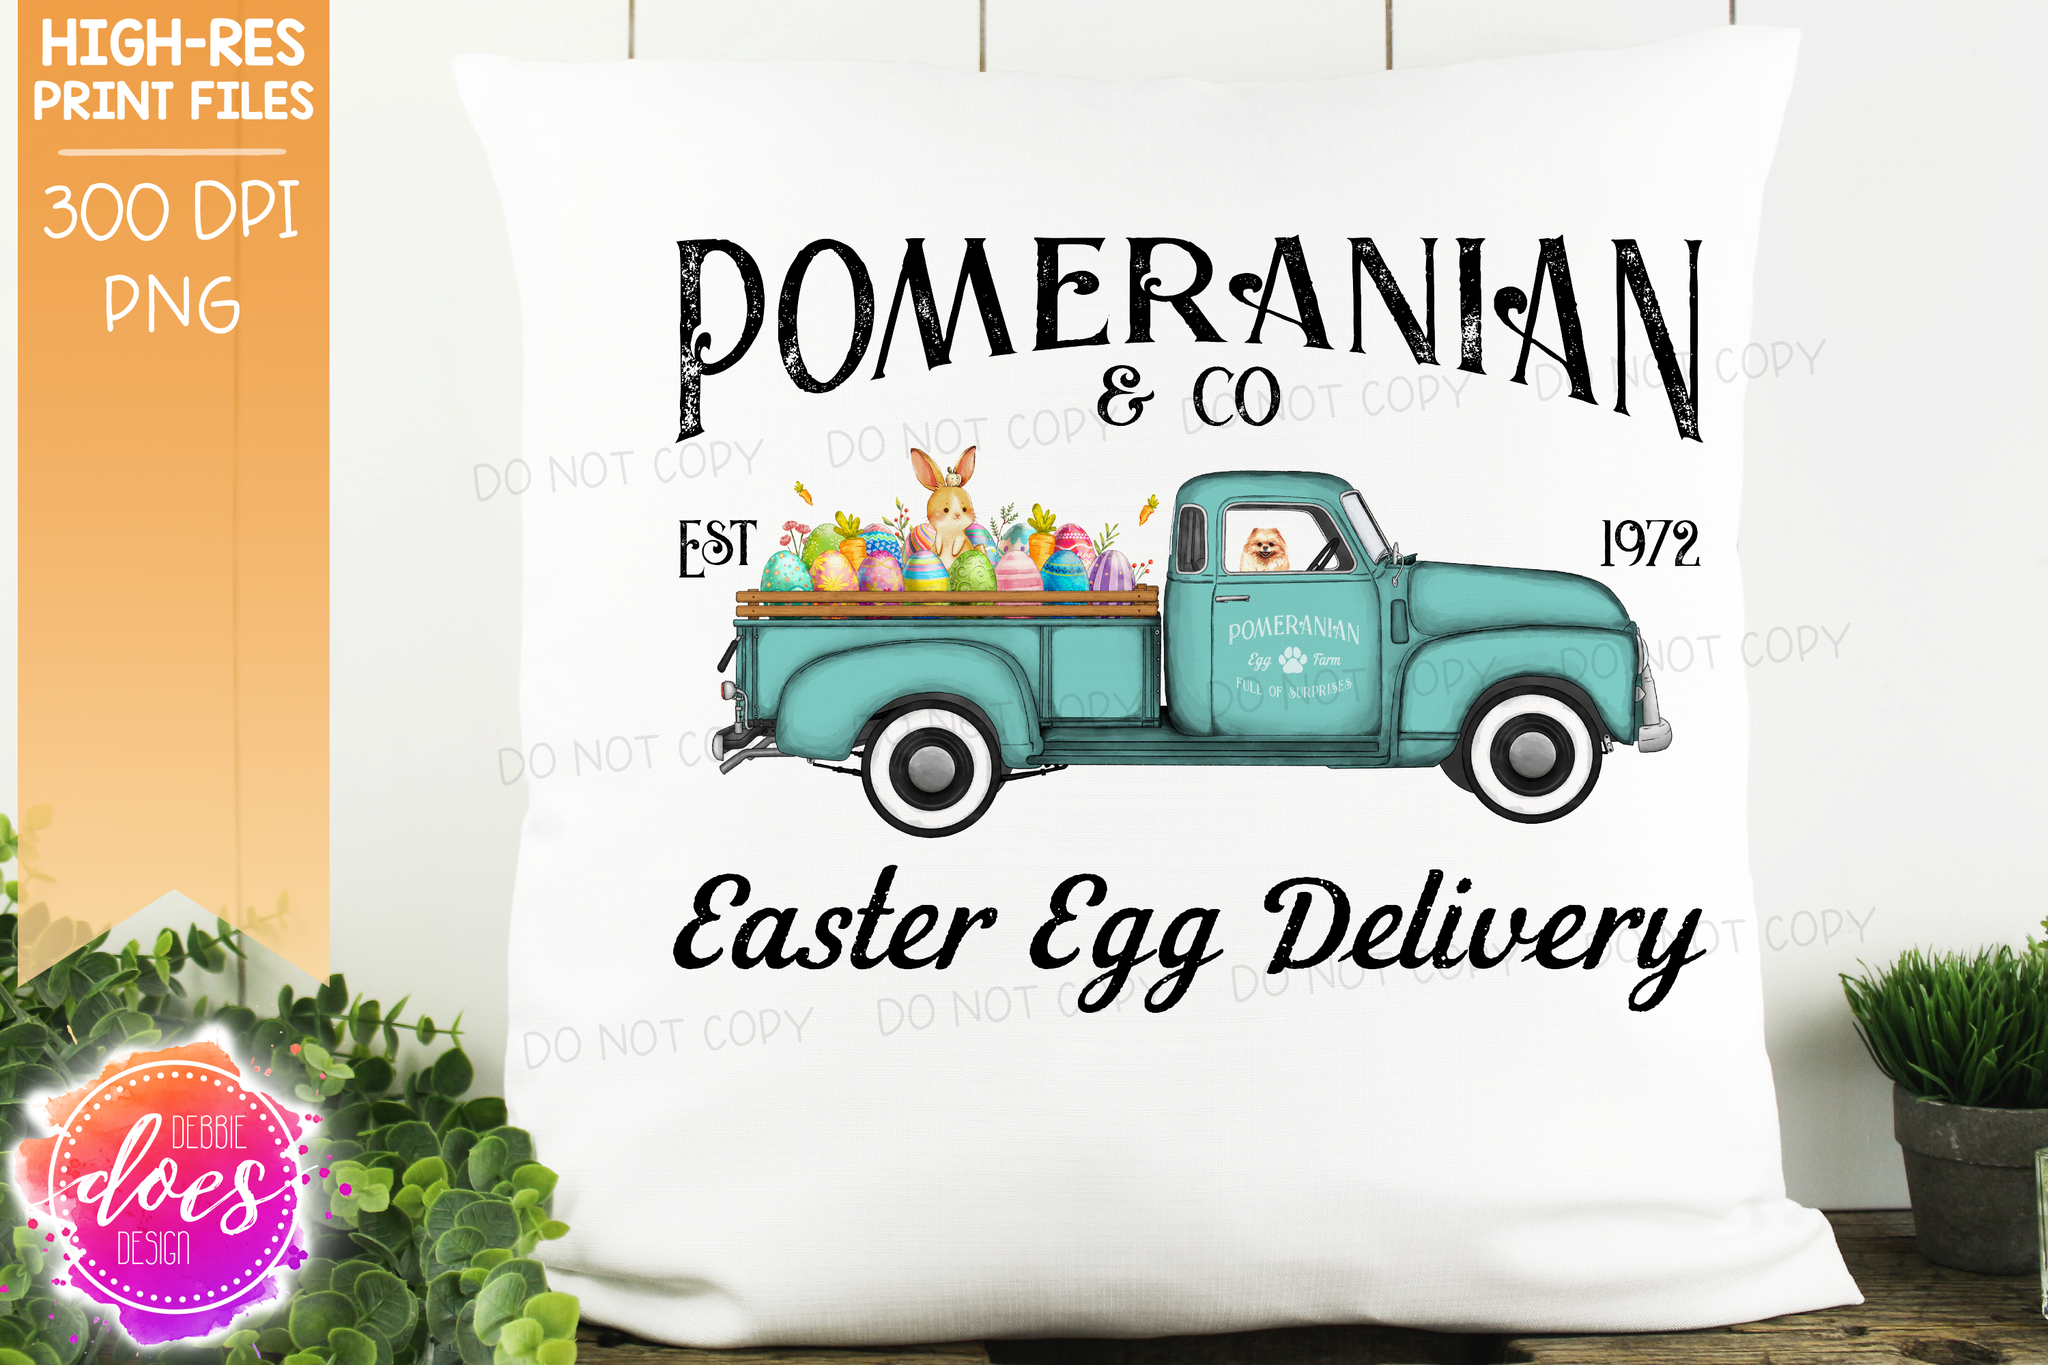 Pomeranian - Dog Easter Egg Delivery Truck  - Sublimation/Printable Design